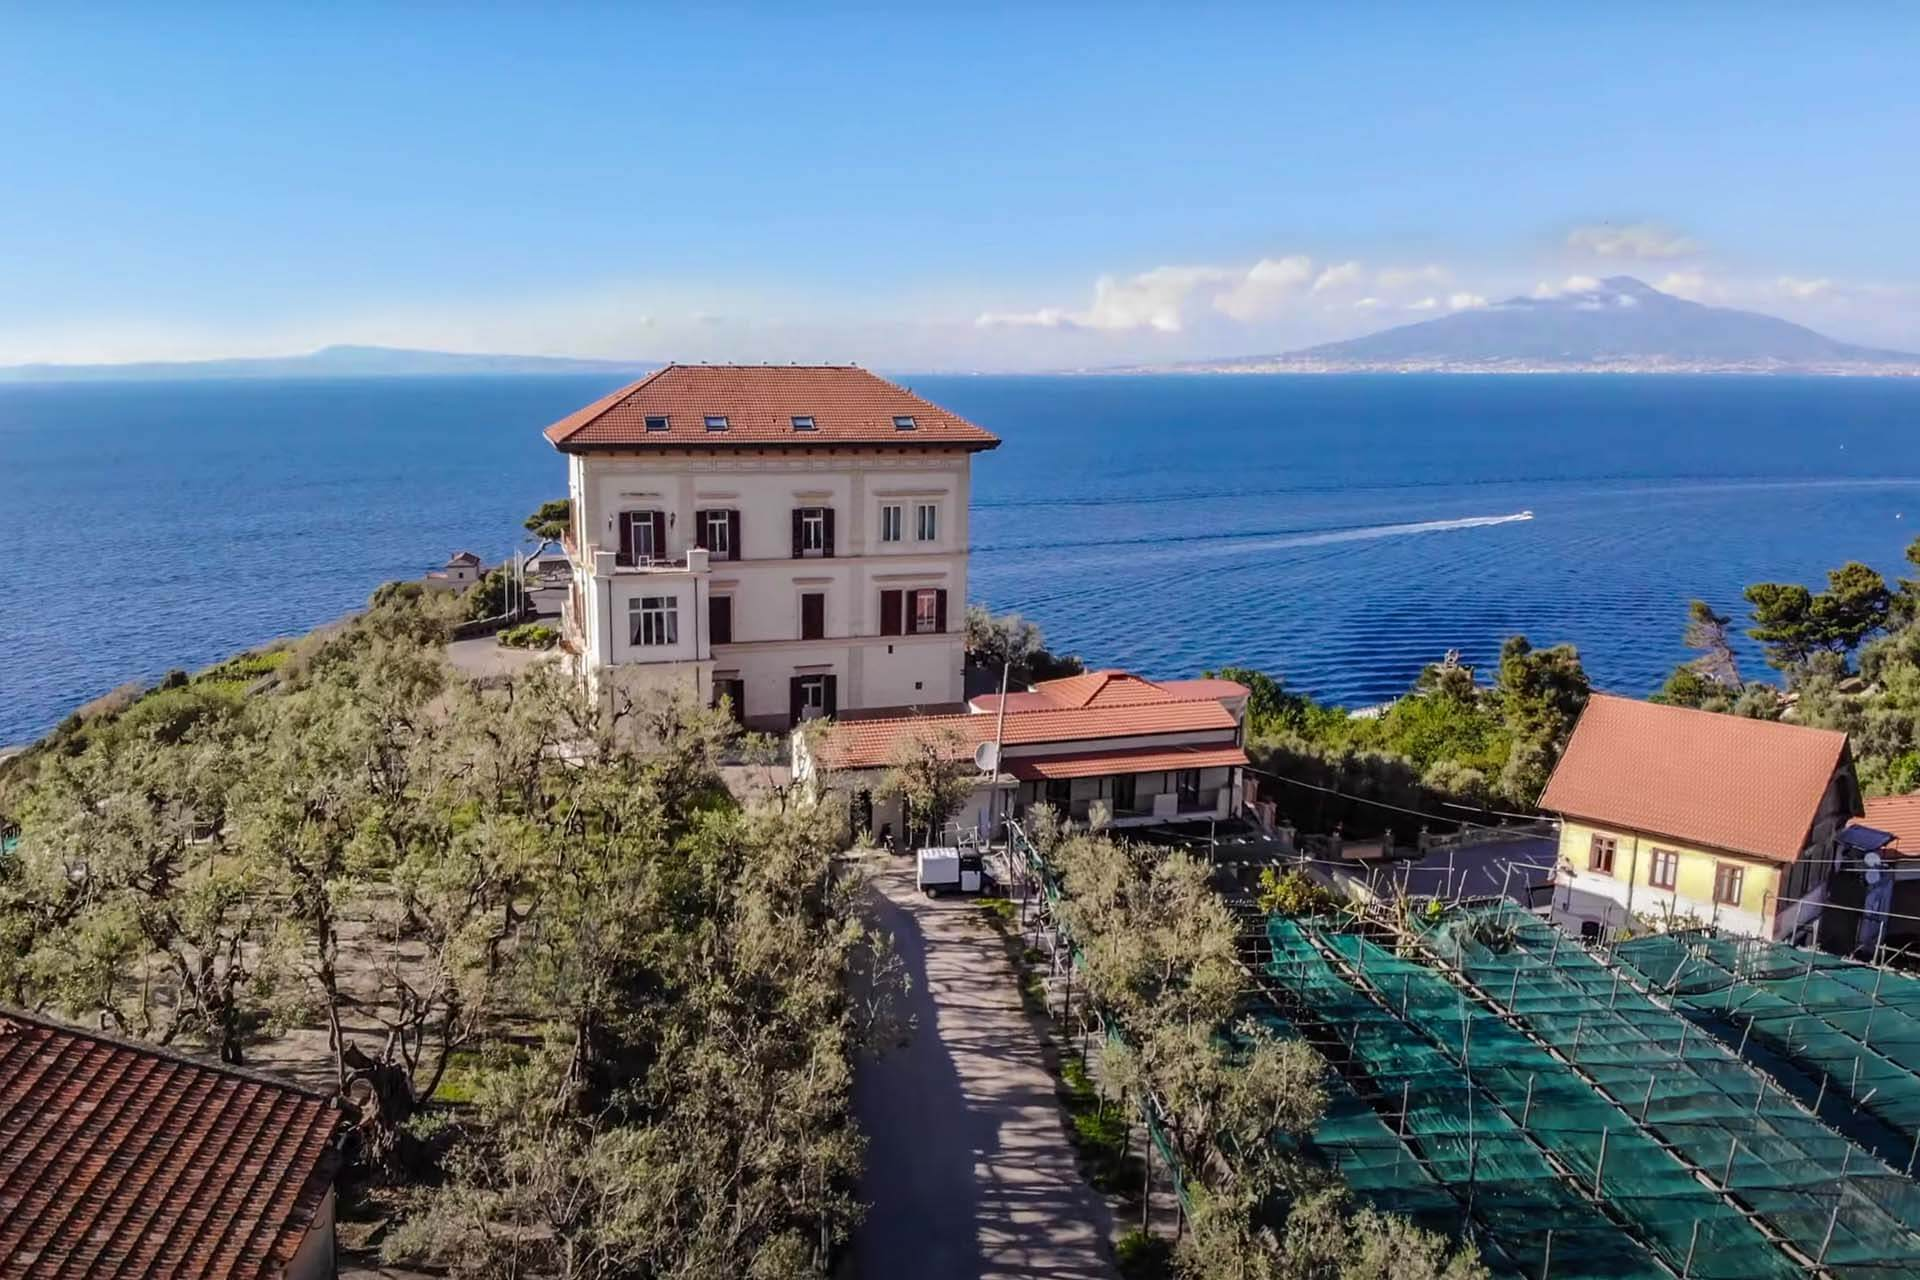 LUXURY VILLA FOR SALE, SORRENTO